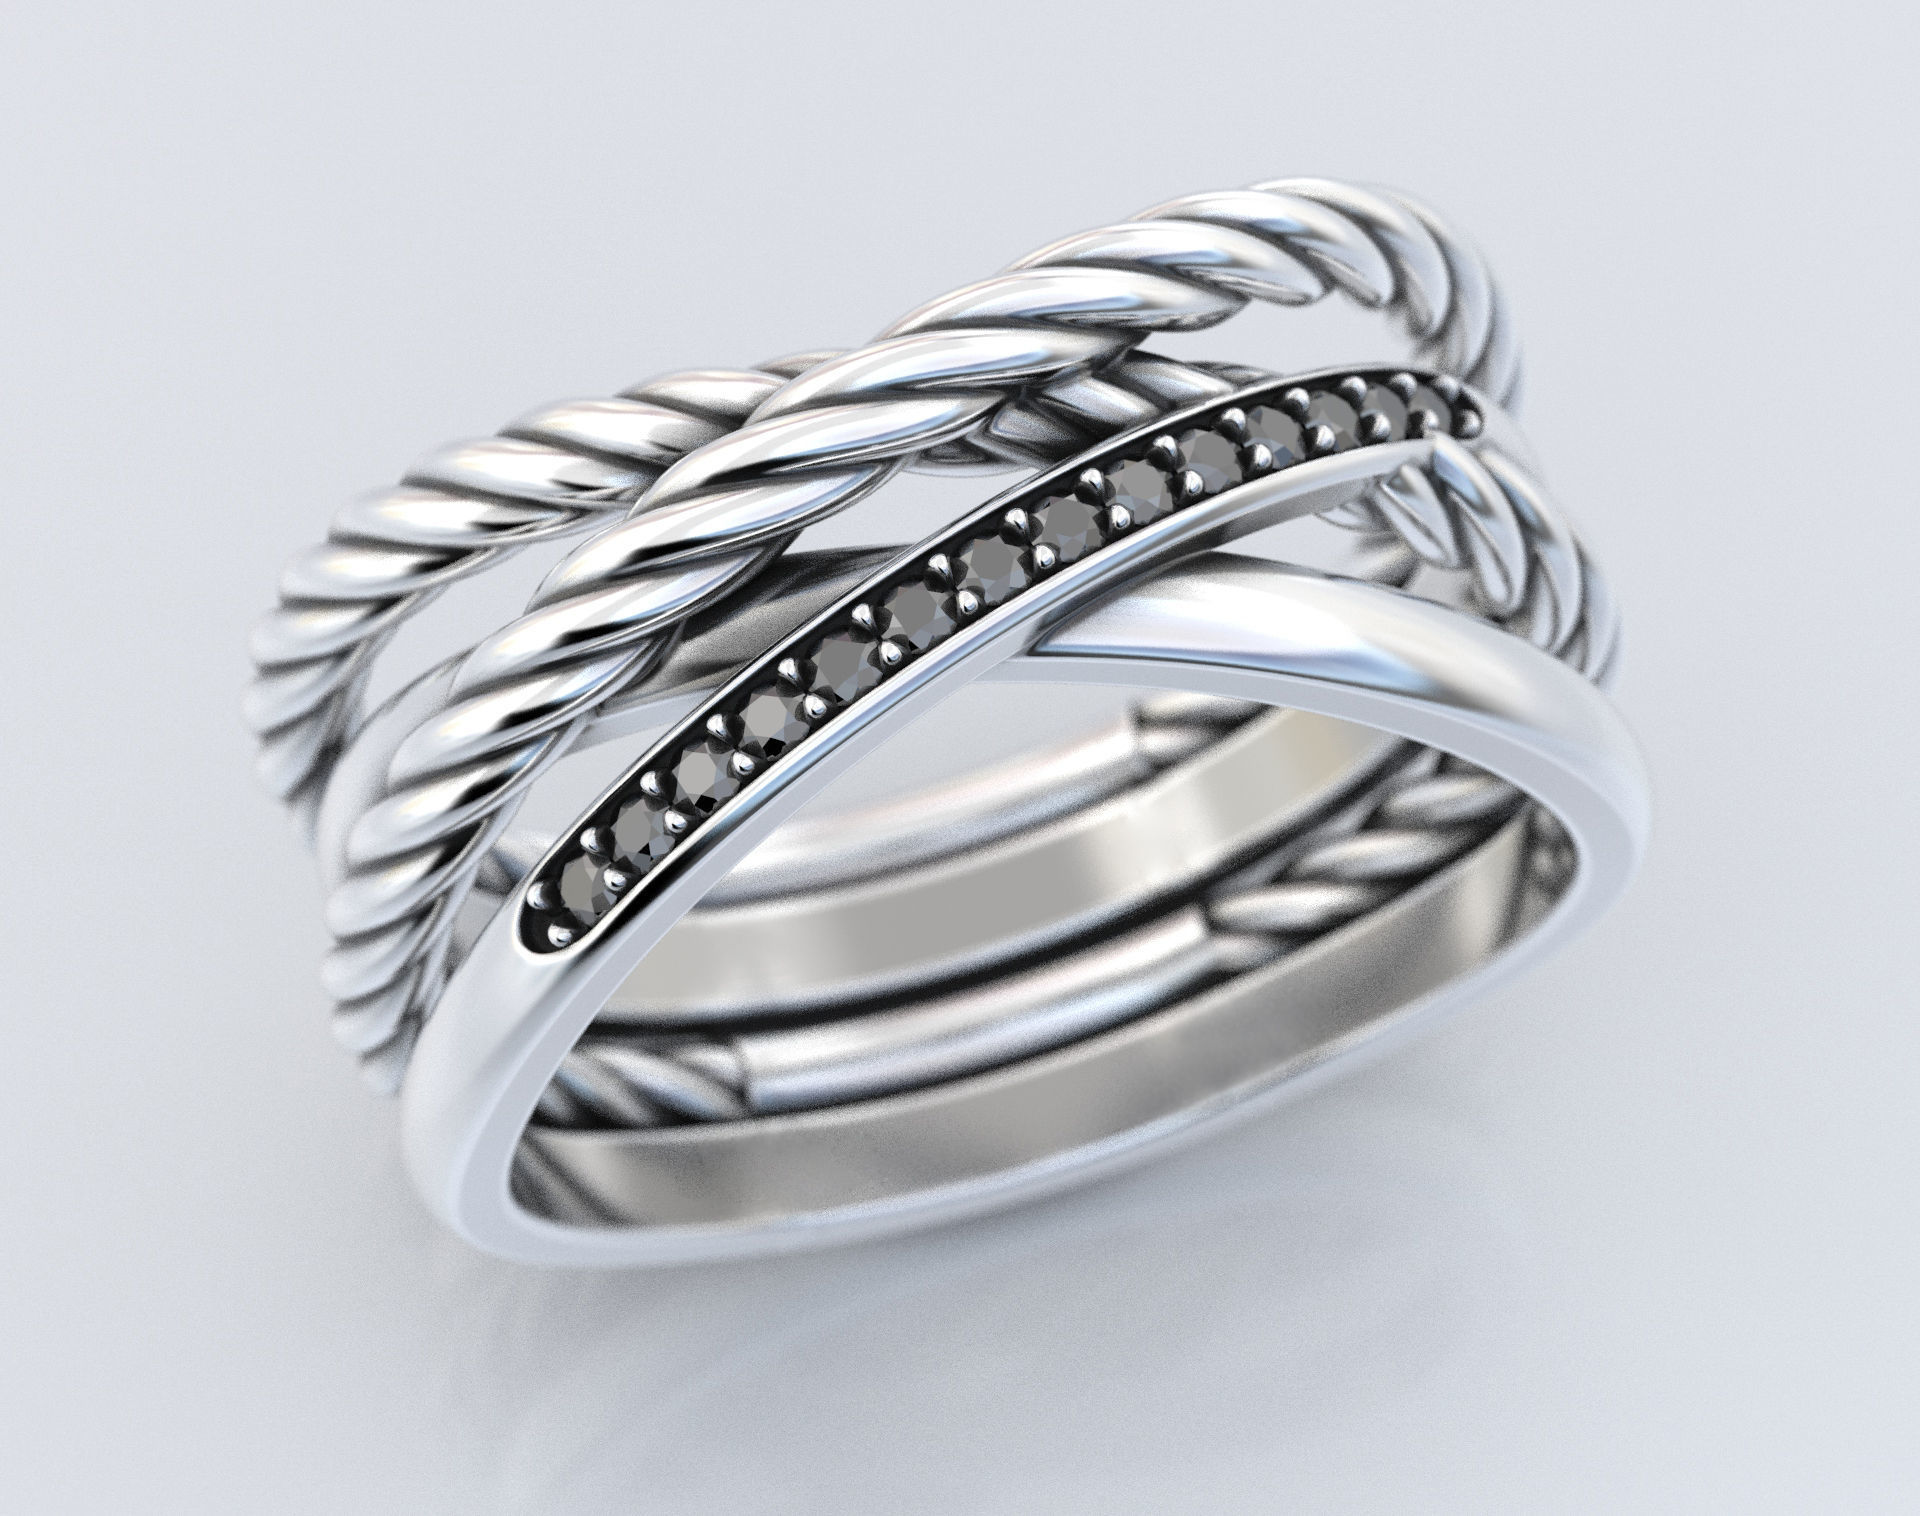 Stylish engagement ring with rope braiding in the form of x